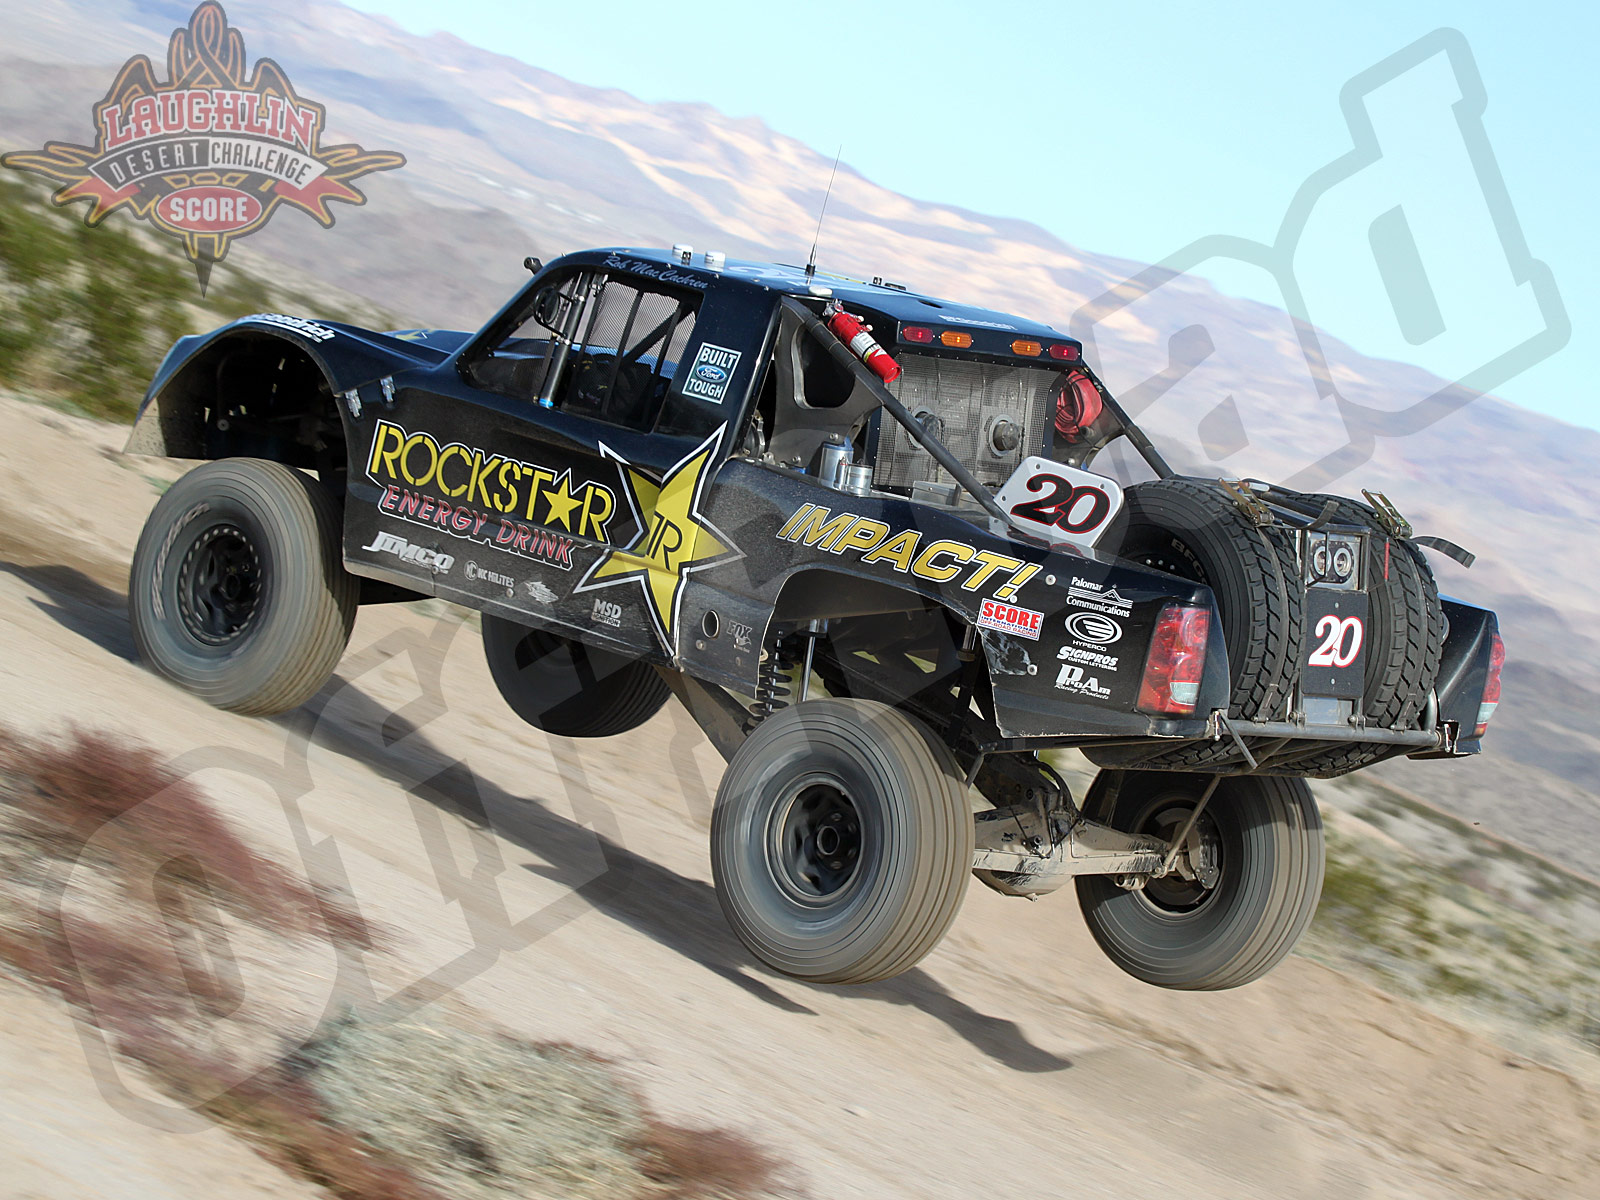 030311or 6799+2011 score laughlin desert challenge+trophy trucks sunday